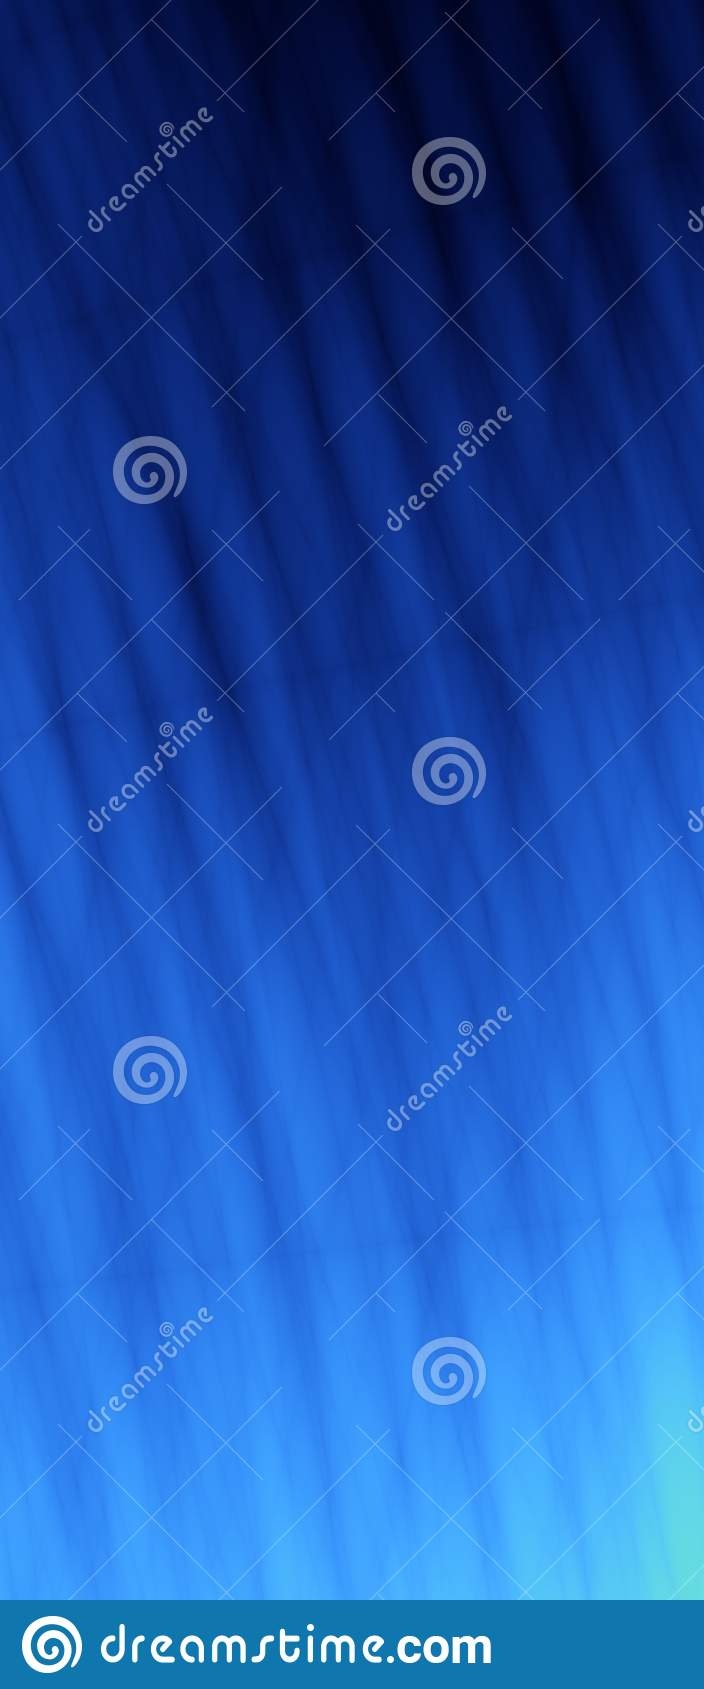 Technology blue deep wallpaper pattern